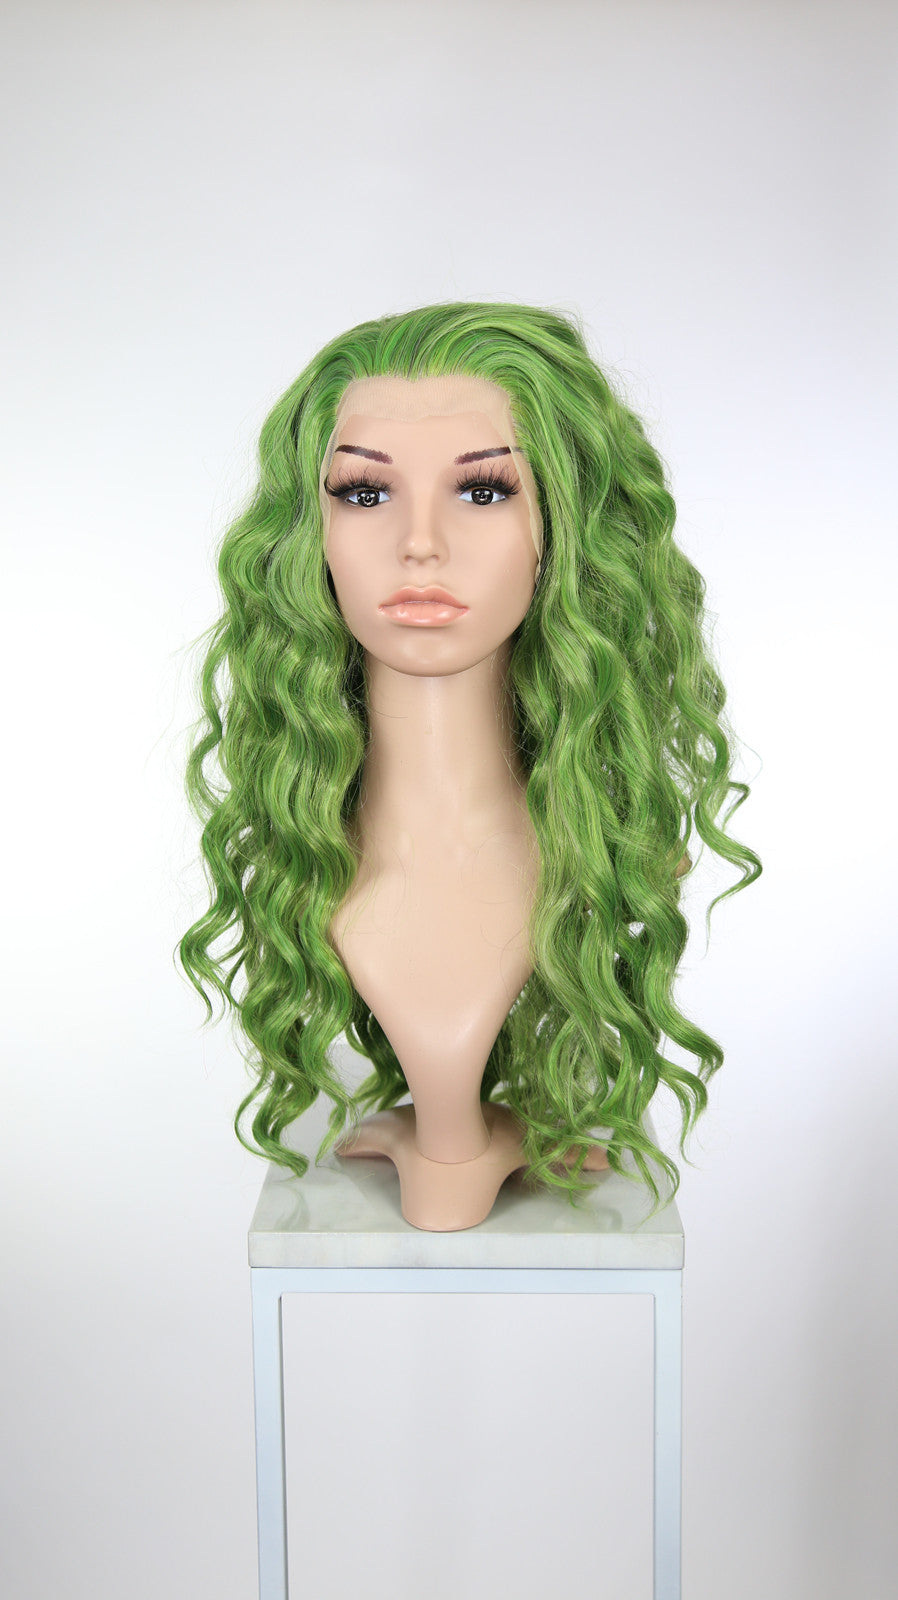 Acid Green Mix Long Curly Lace Front Wig - Princess Series LP193